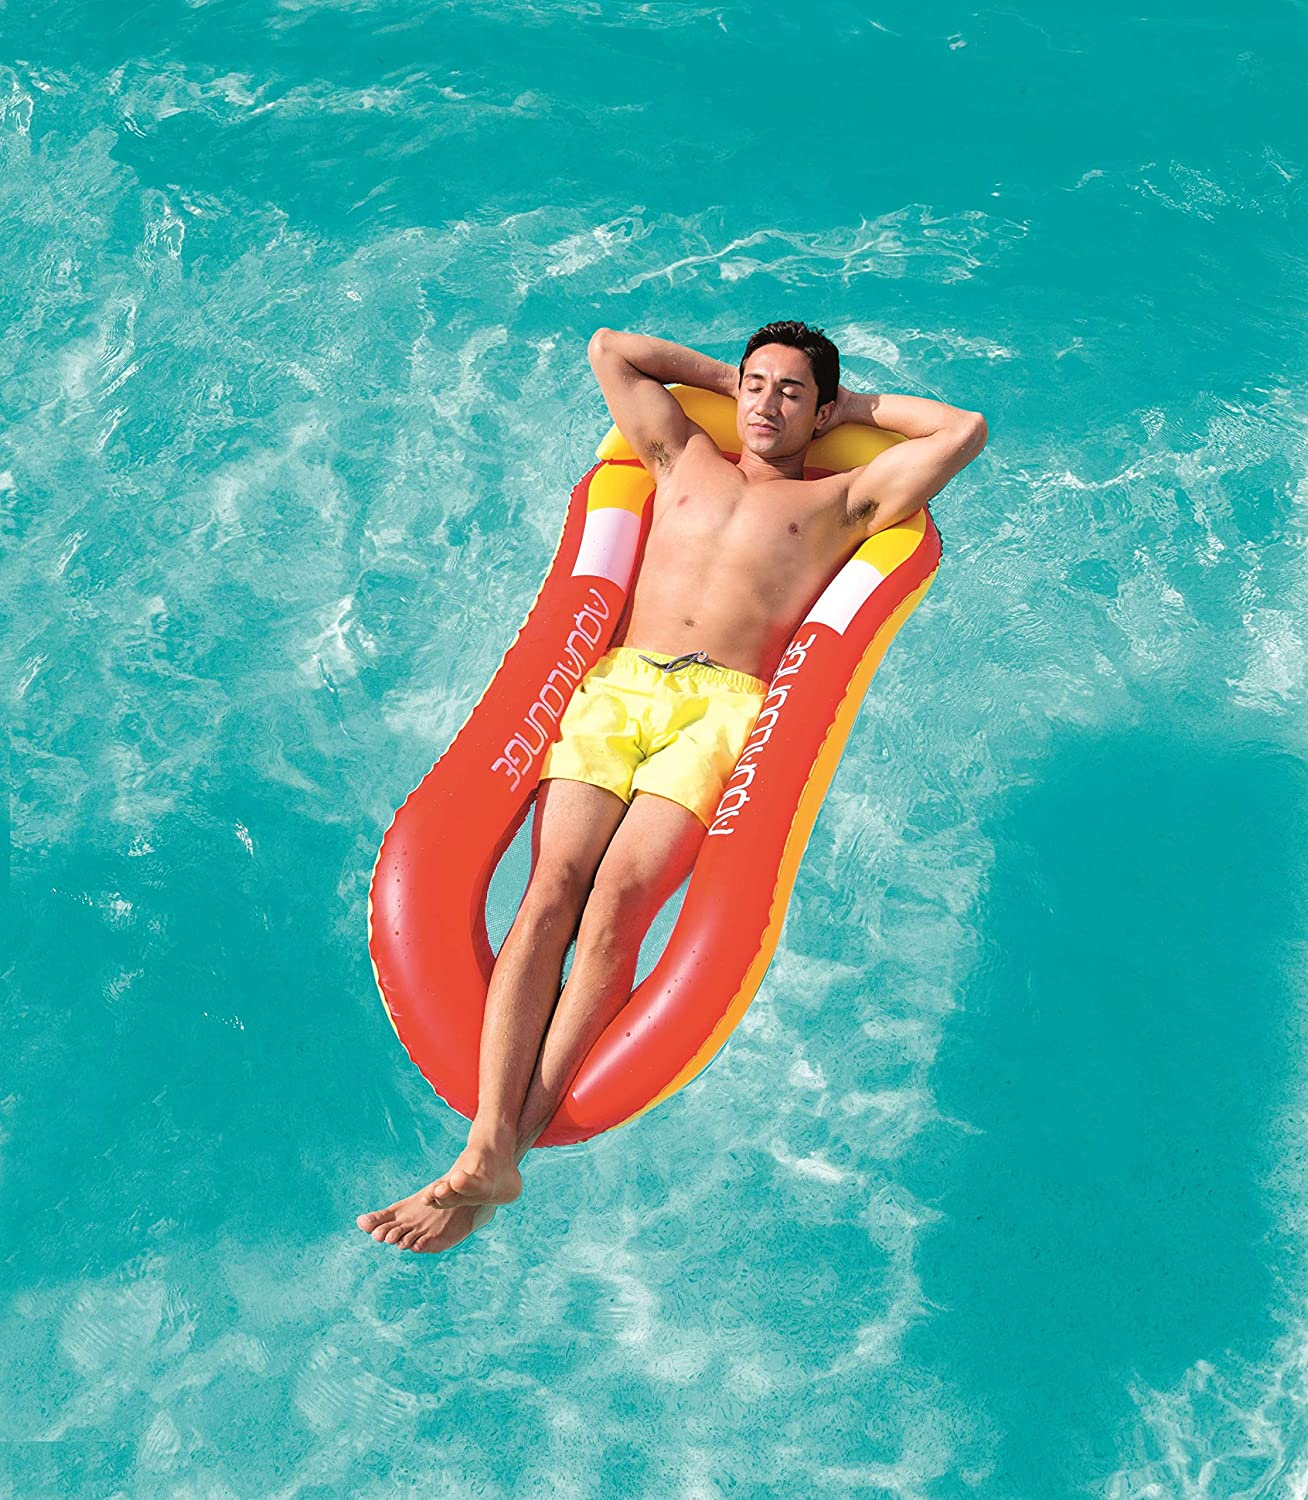 INTEX GONFIABILE MODELLO Lilo Sole Spiaggia Piscina Lettino Materassino Galleggiante Per Adulti